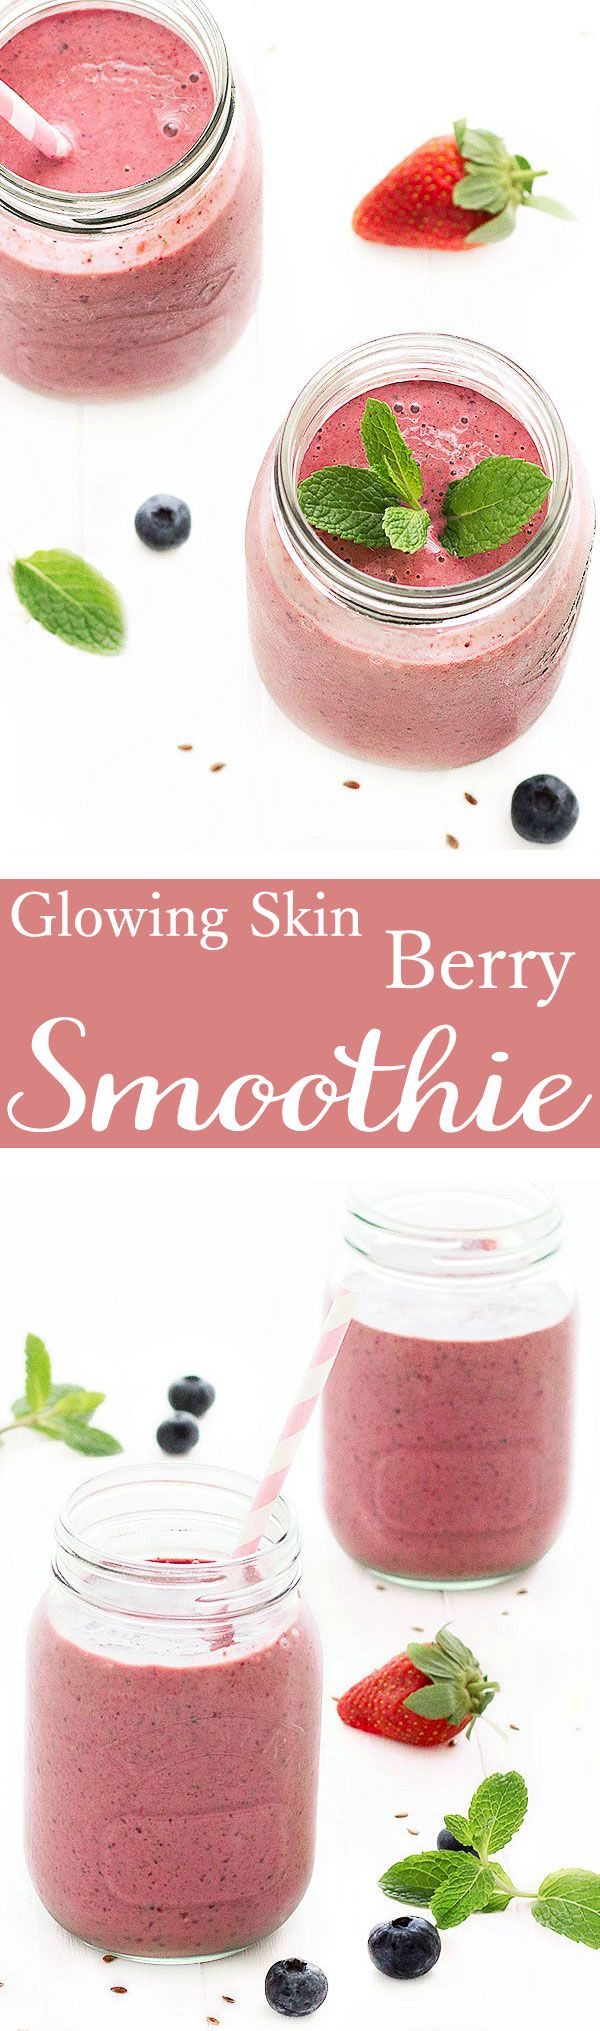 Glowing skin berry smoothie- rich in vitamins and minerals essential for a healthy, radiant skin. I love to have a smoothie for breakfast: it's ready in less than 5 minutes, it's nourishing, healthy and satisfying!